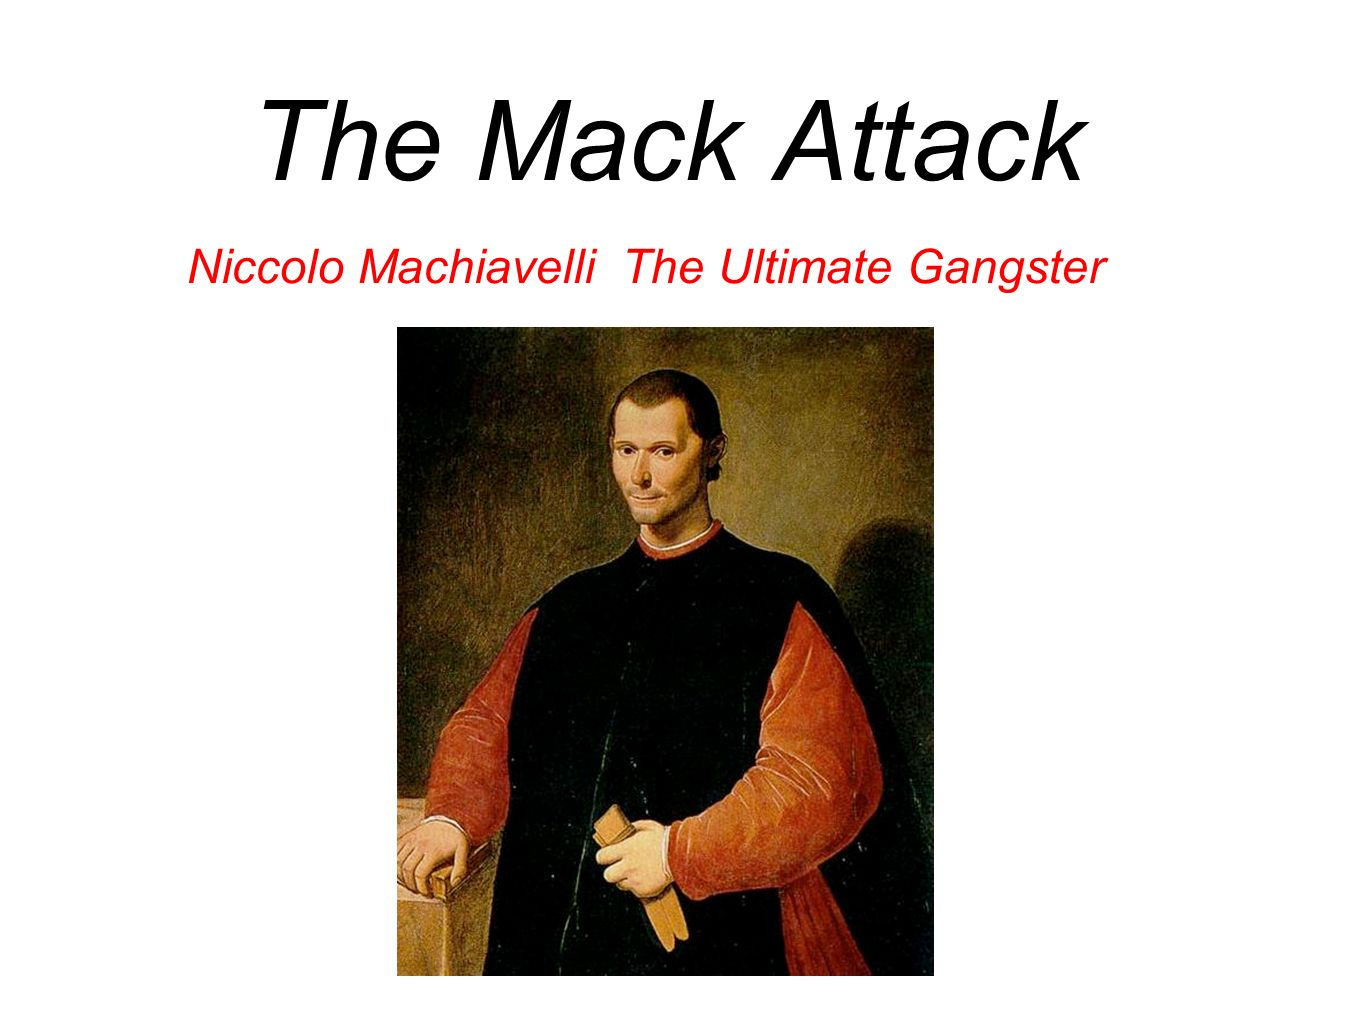 a literary analysis of the essay on niccolo machiavelli Machiavelli niccolo-machiavellicom's essay list  a 5 page analysis that compares the  a 10 page paper which synthesizes important literary works.